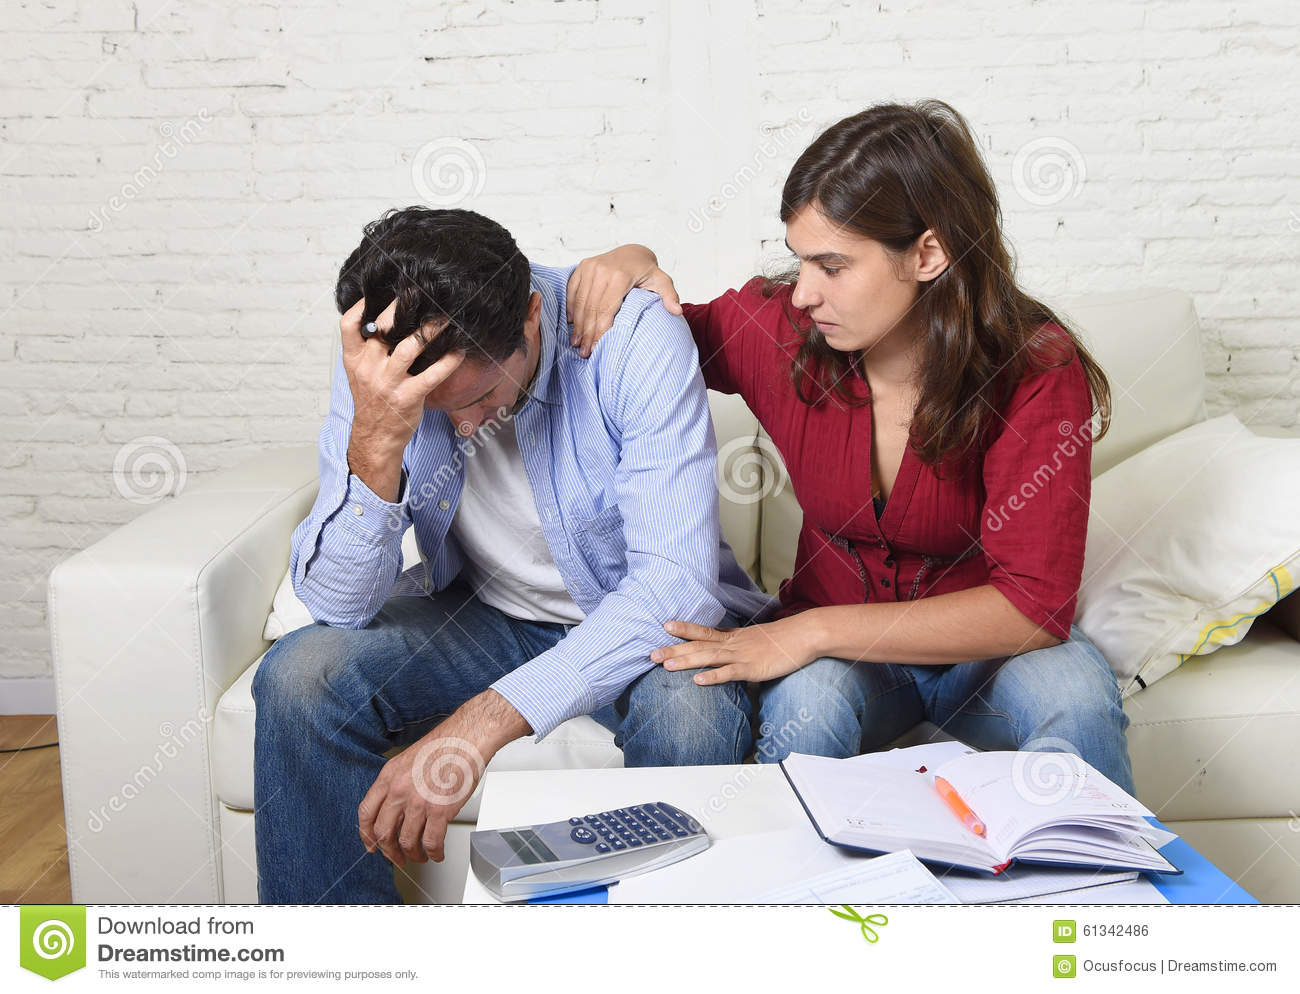 Young couple worried home in stress wife comforting husband accounting debt unpaid bills bank papers expenses